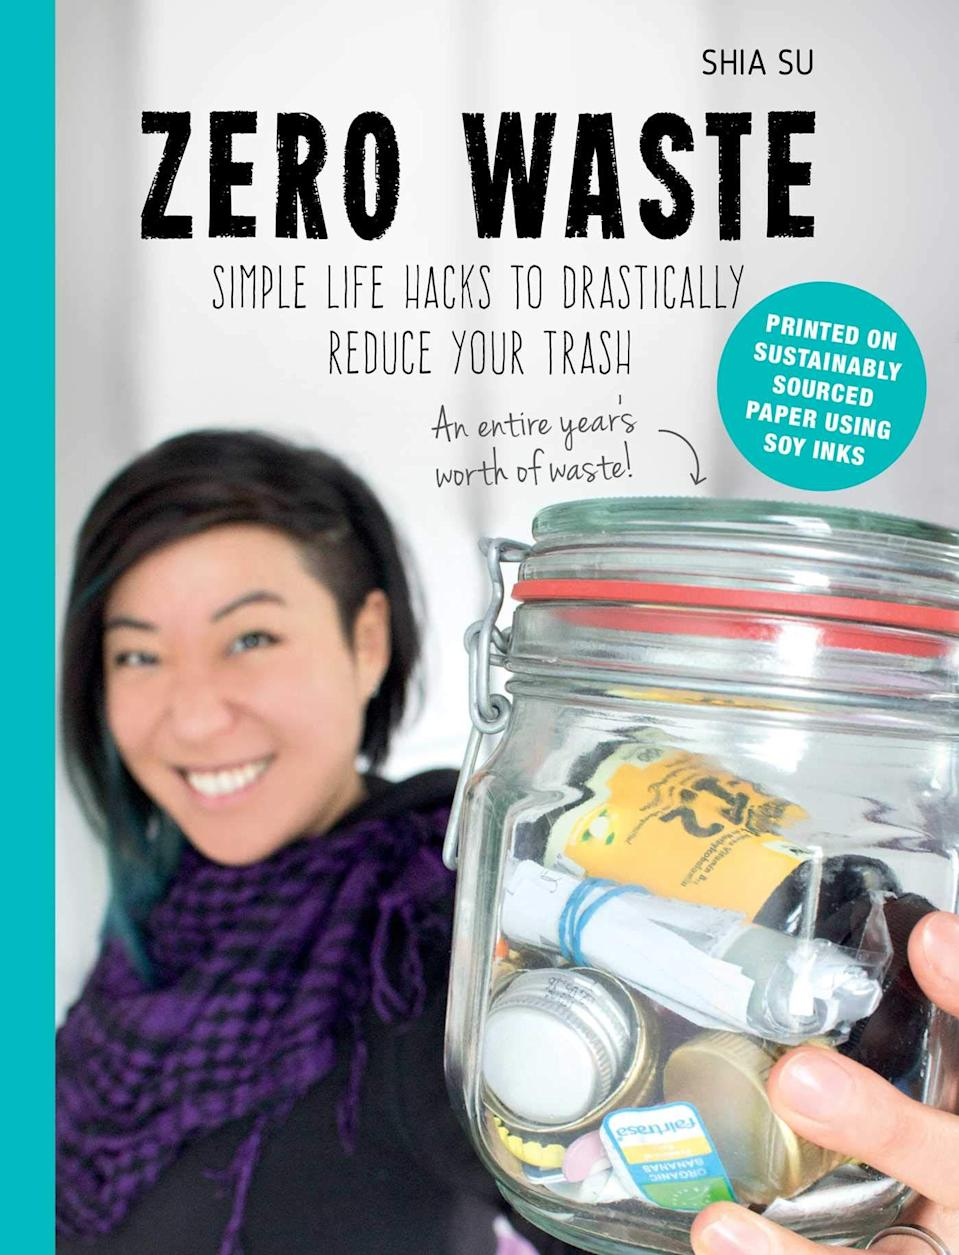 Zero Waste: Simple Life Hacks to Drastically Reduce Your Trash by Shia Su (Photo via Amazon)